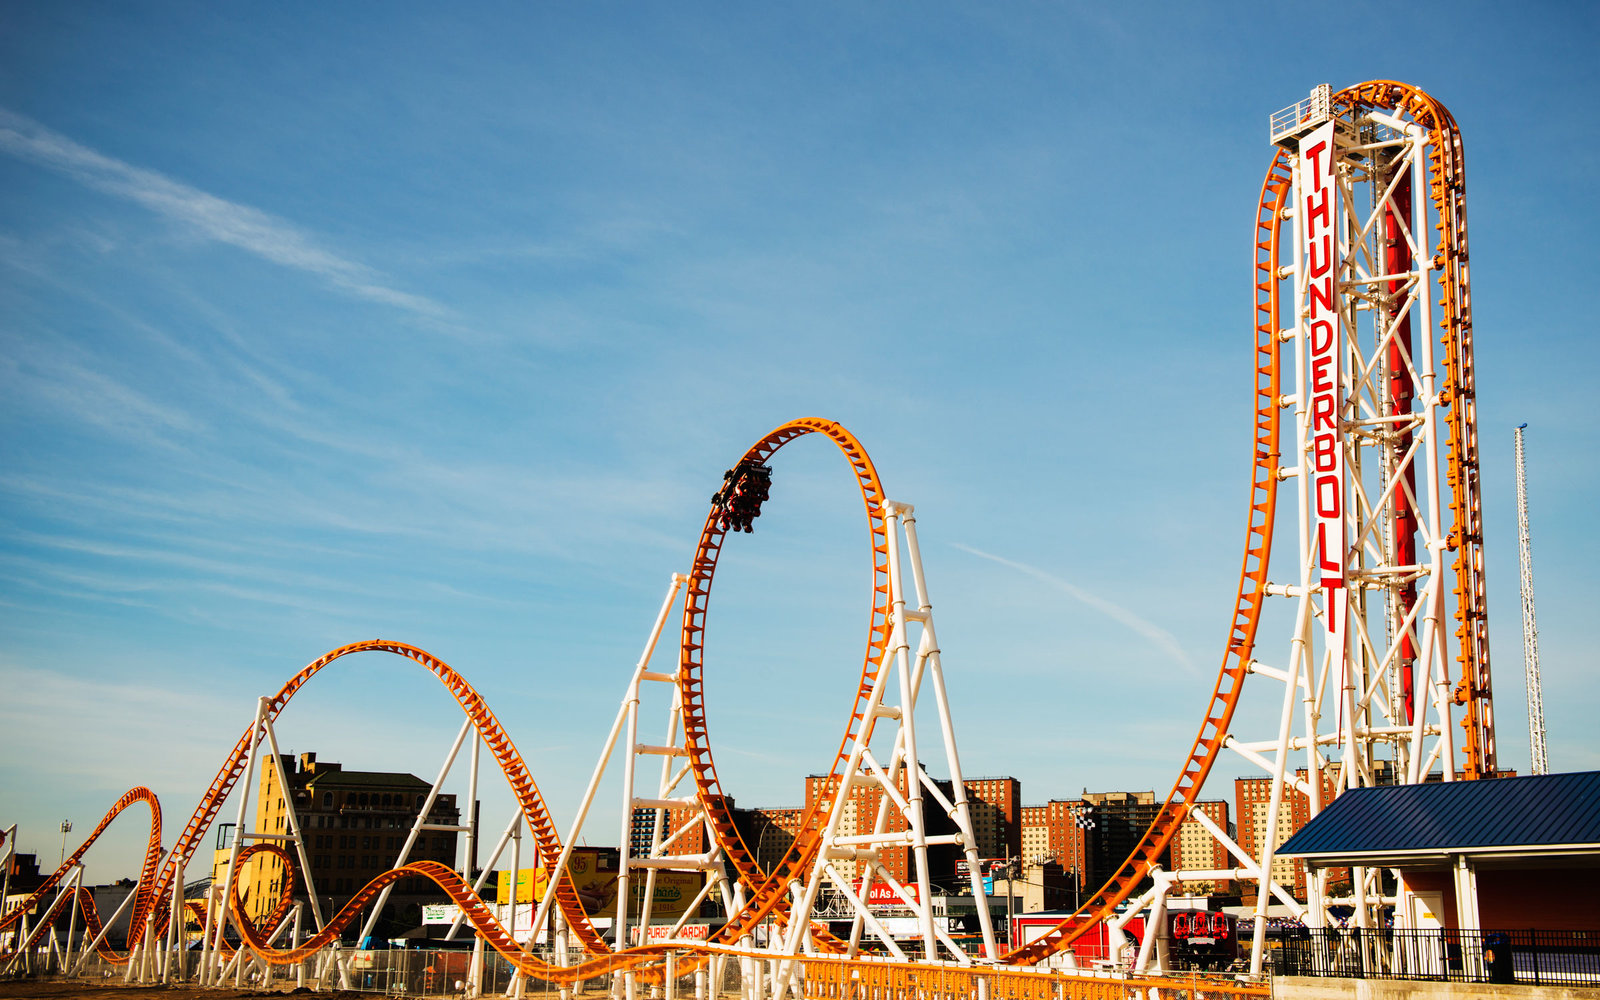 Roller Coaster The Surprising Health Benefit Of Riding Roller Coasters